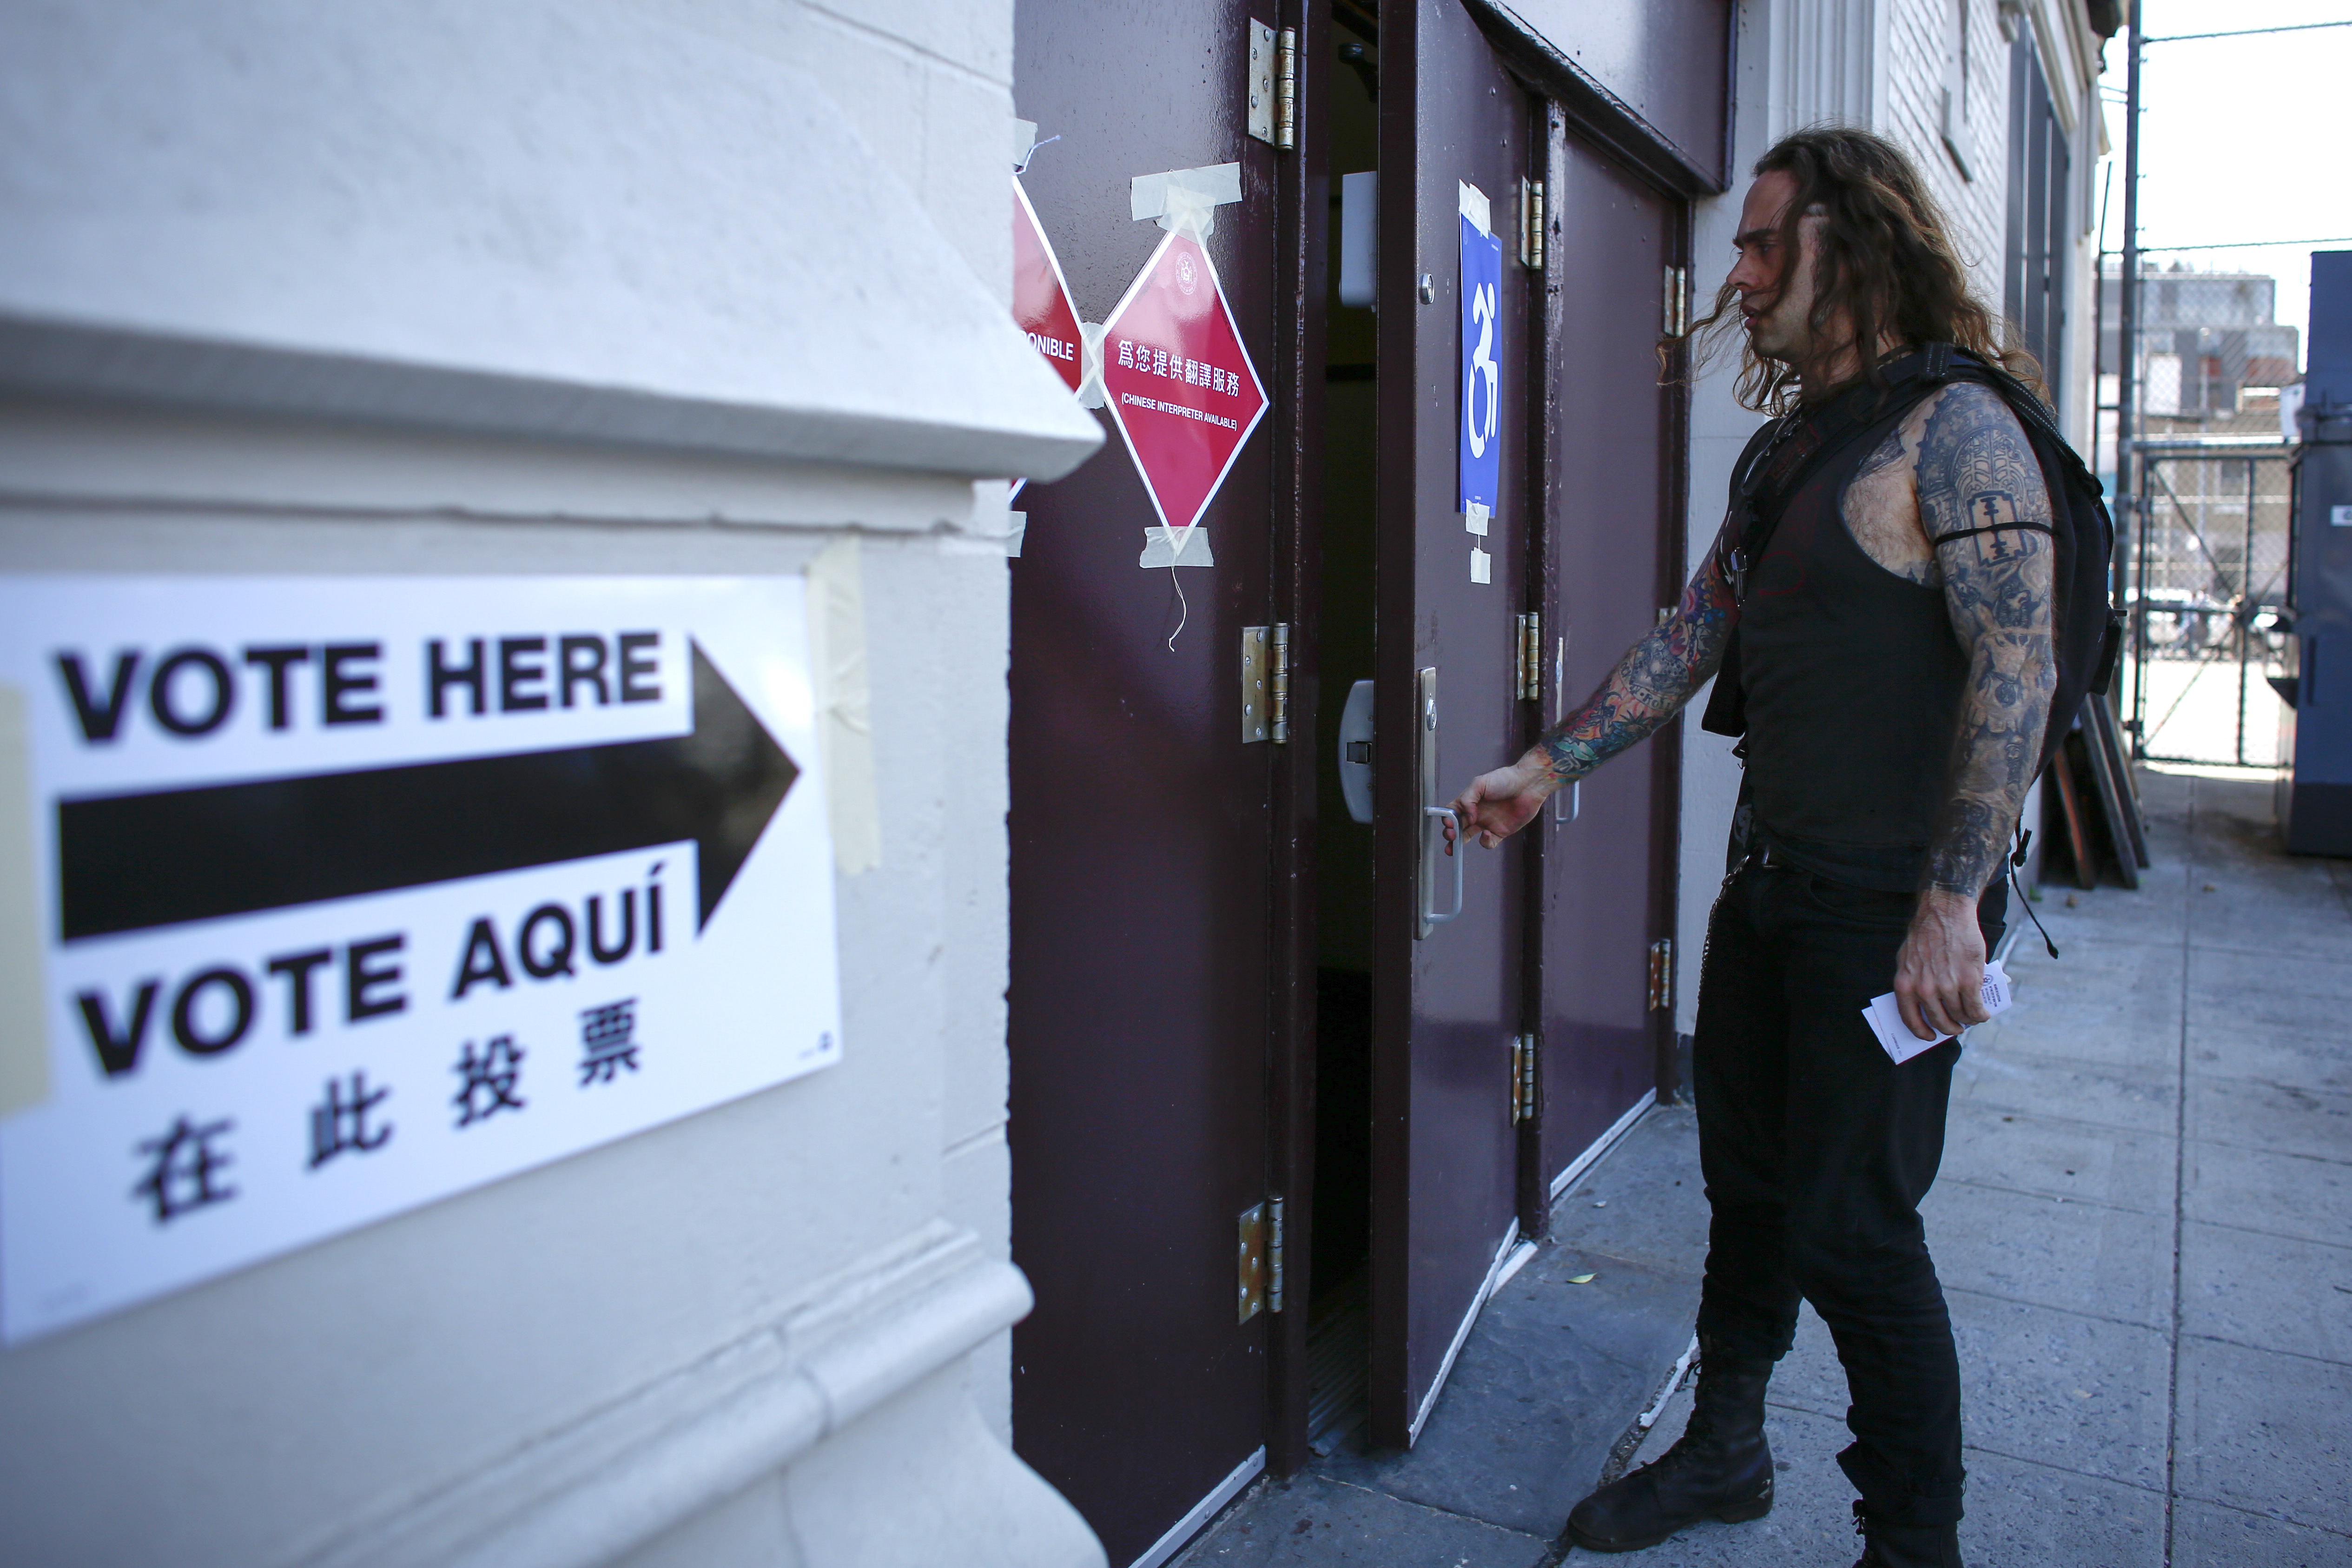 A man arrives at a polling station in Brooklyn, New York during the New York presidential primary April 19, 2016.